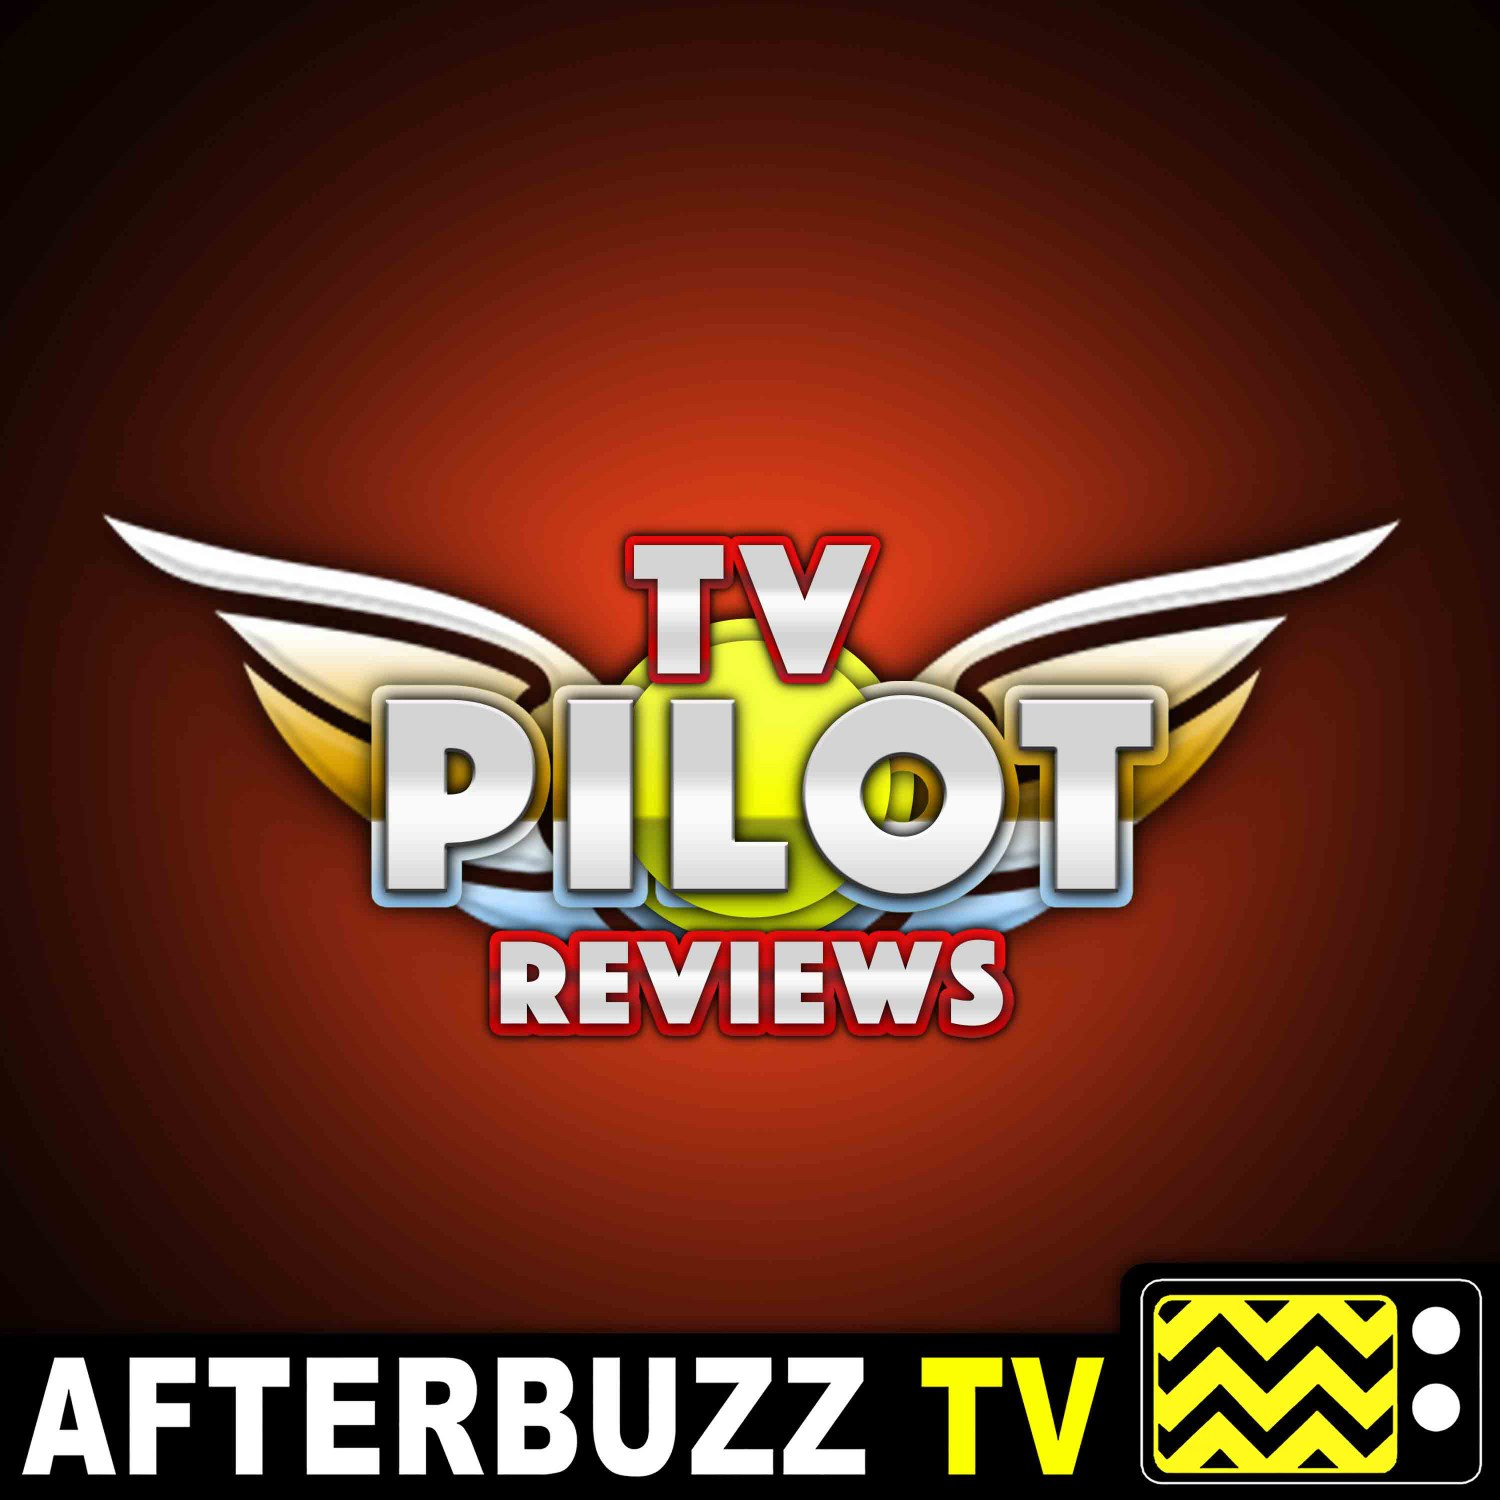 TV Pilot Reviews - AfterBuzz TV